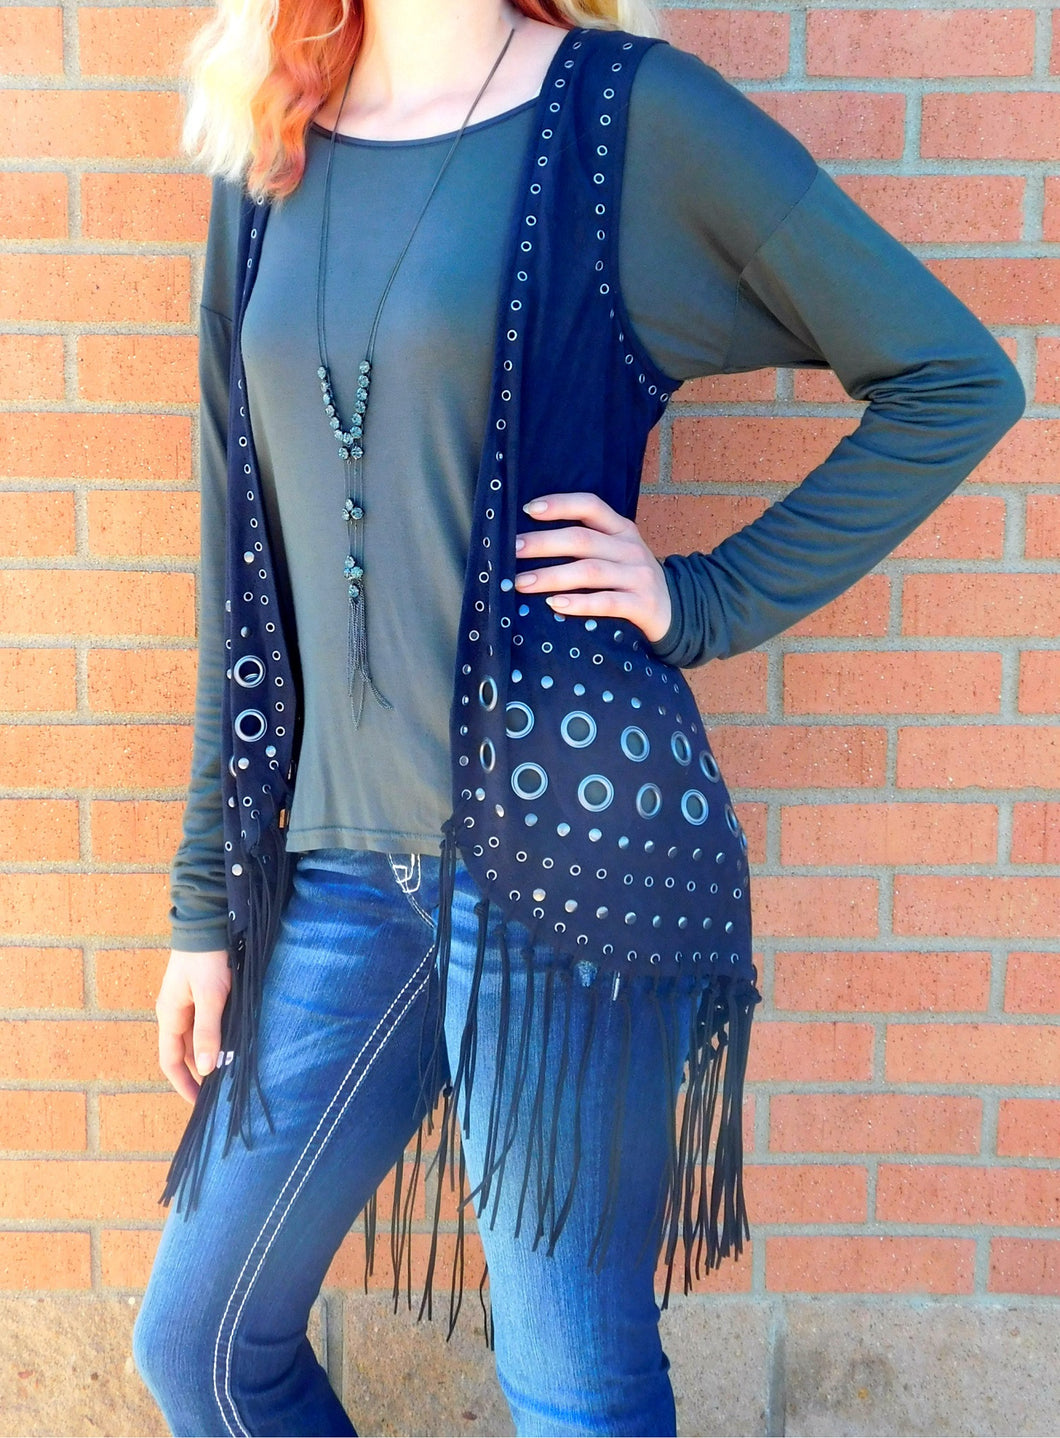 Firmiana | Black Vest with Fringe